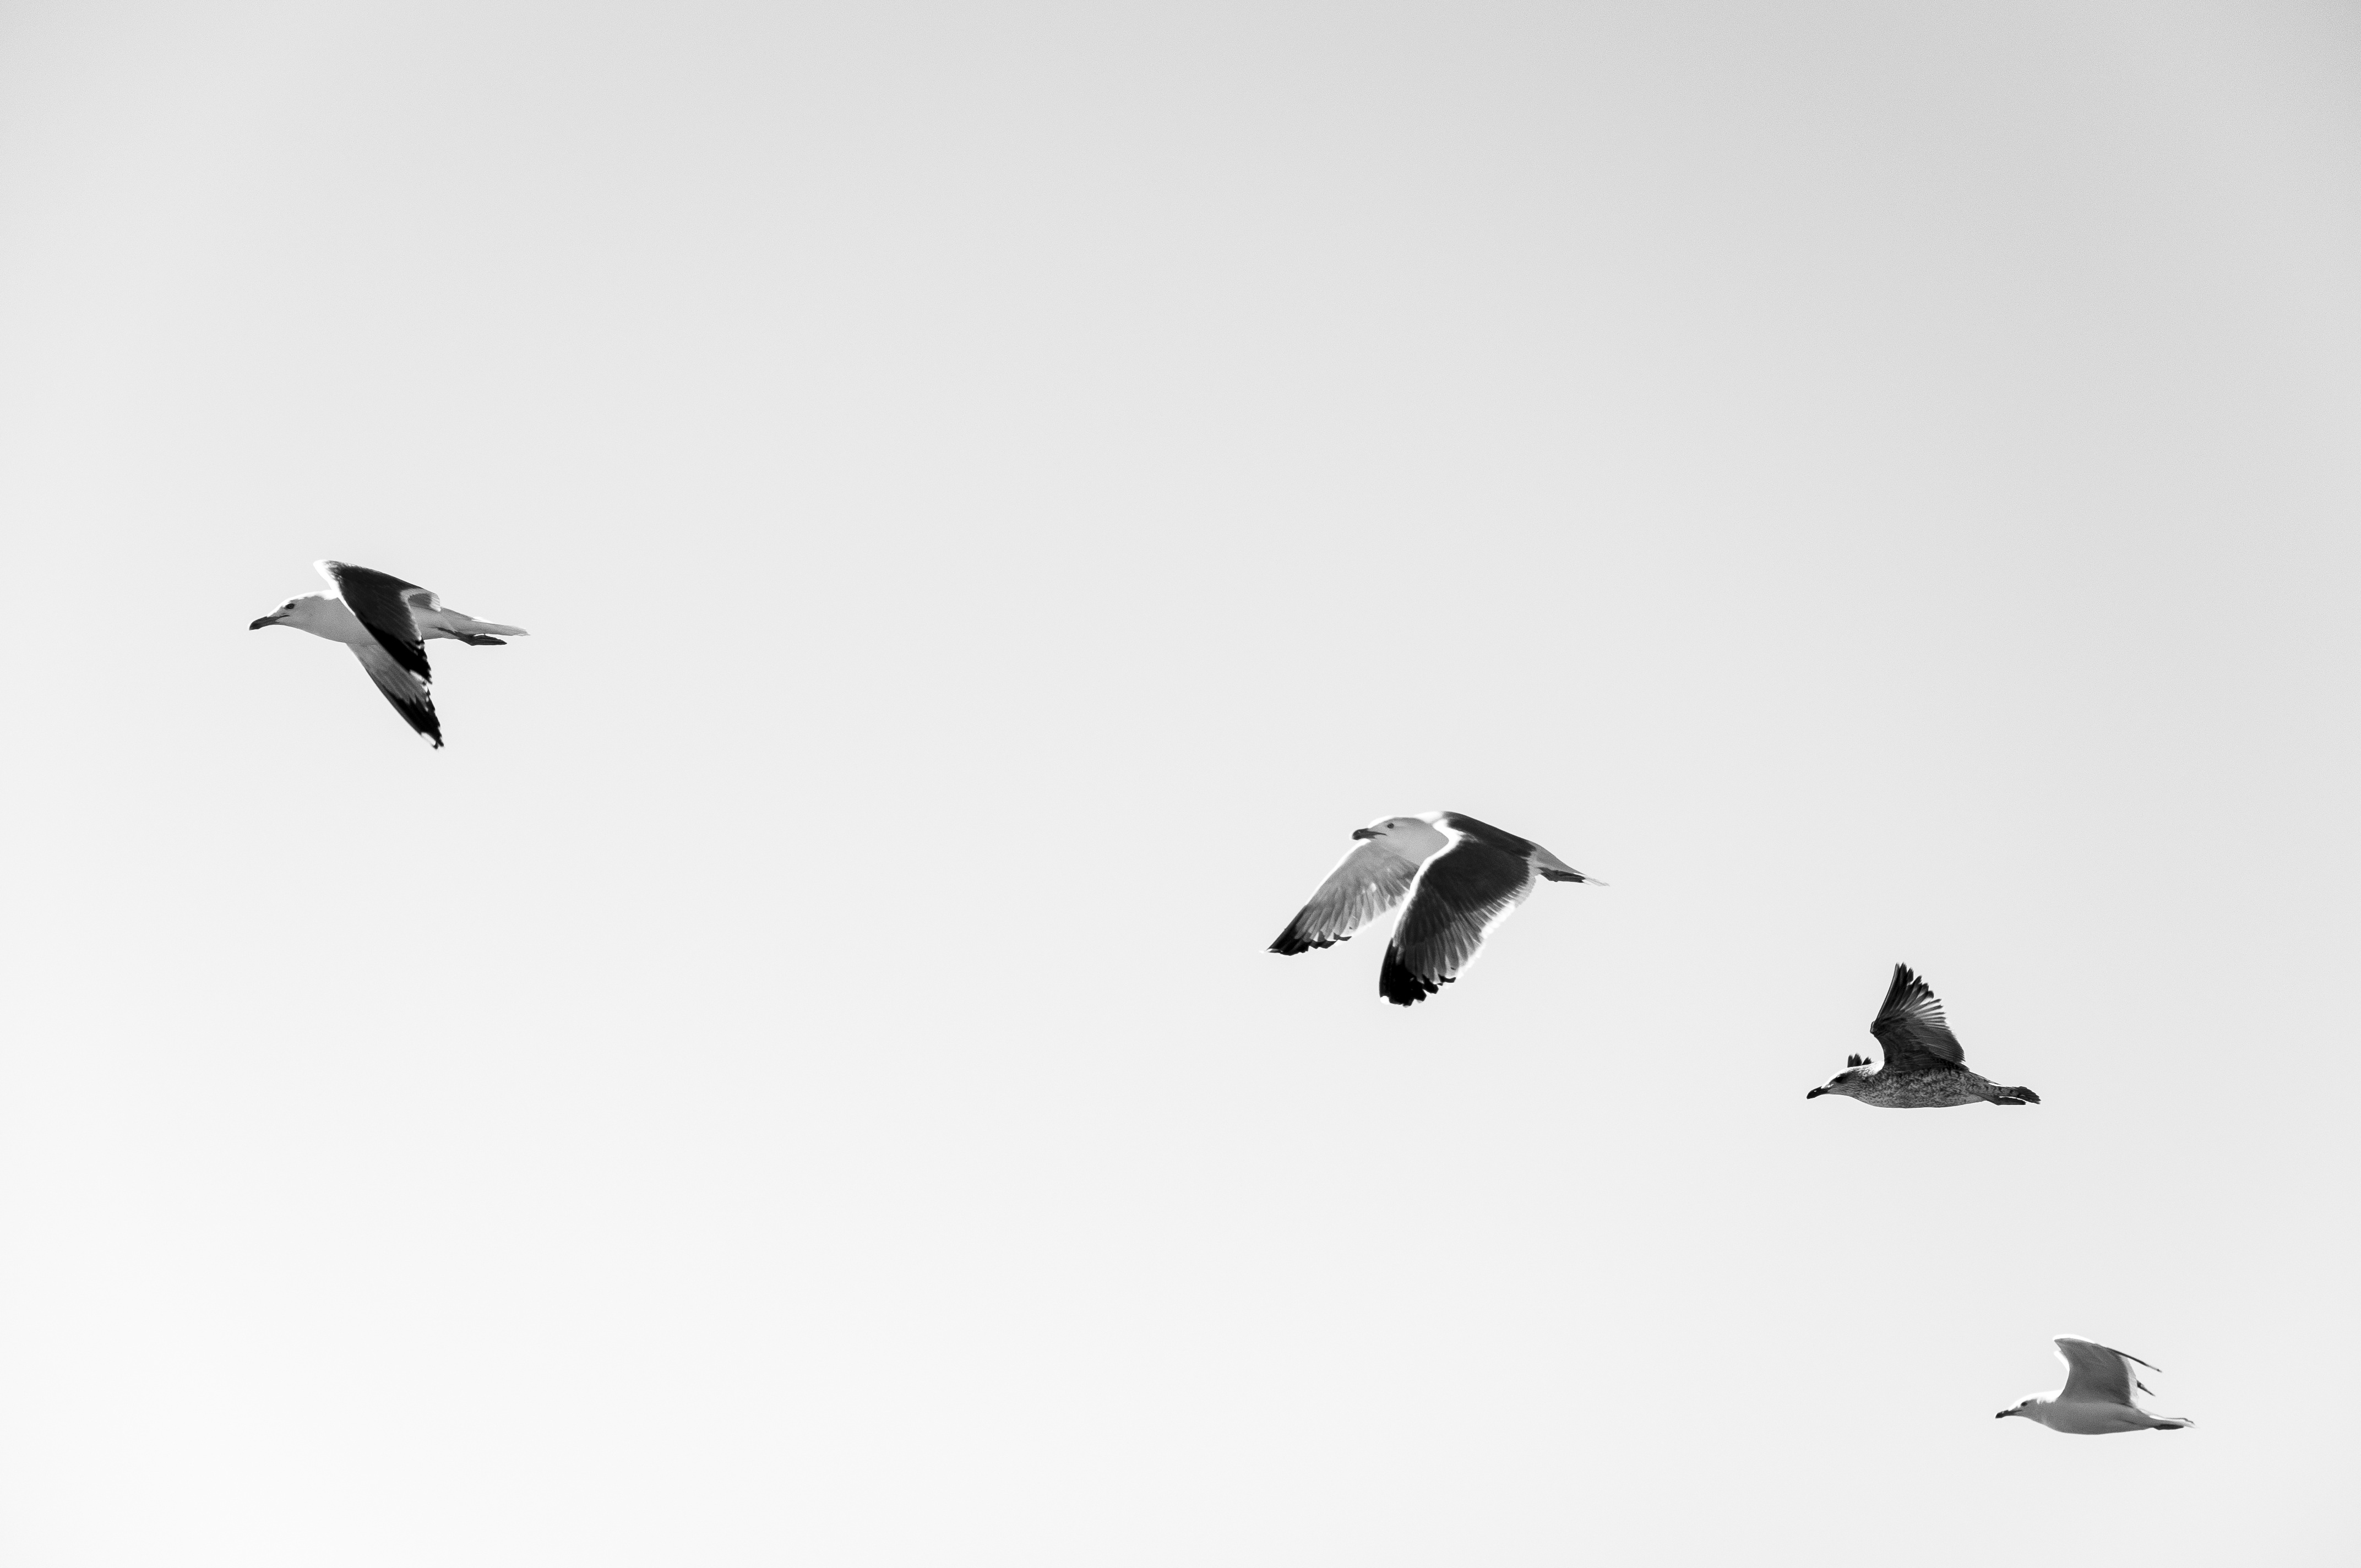 116226 download wallpaper Birds, Sky, Seagulls, Minimalism, Flight screensavers and pictures for free